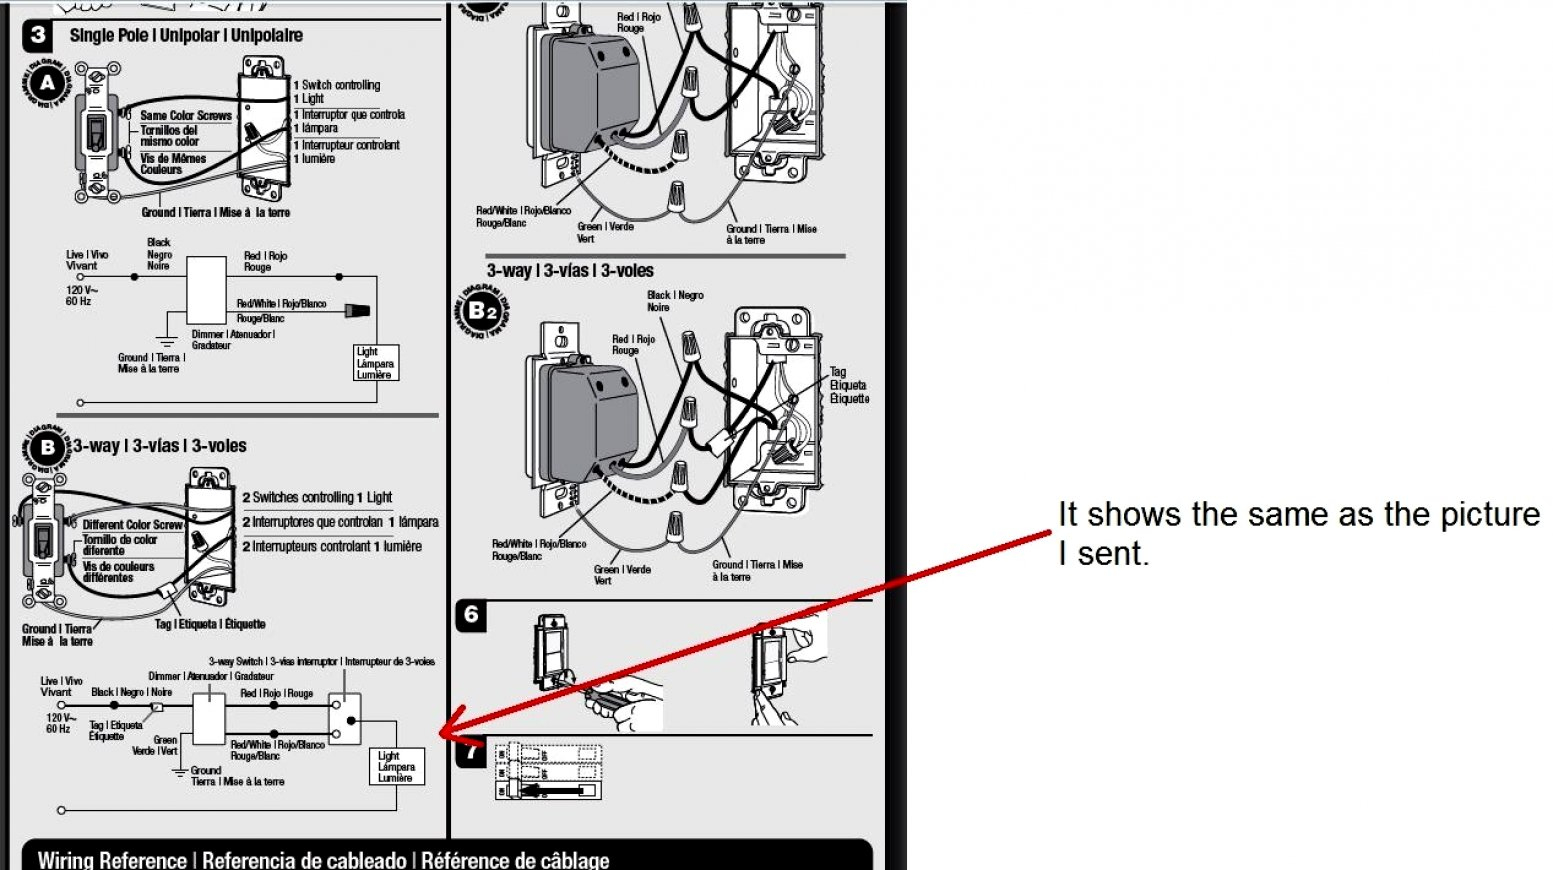 3 Way Wiring Diagram Lutron | Manual E-Books - Lutron 3 Way Dimmer Wiring Diagram